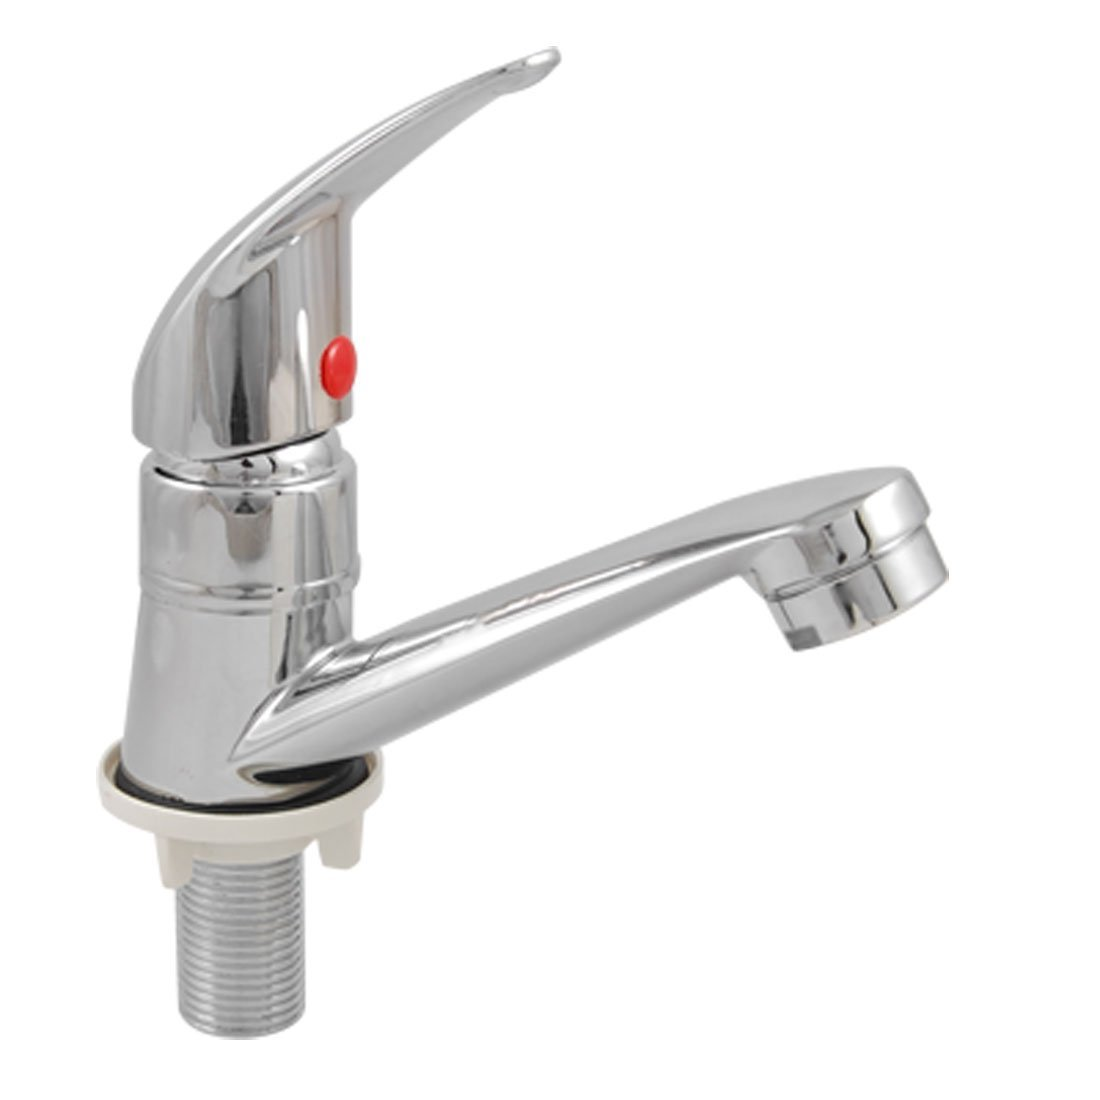 uxcell Bathroom Sink Chrome Finish Single Handle Basin Faucet Water Tap